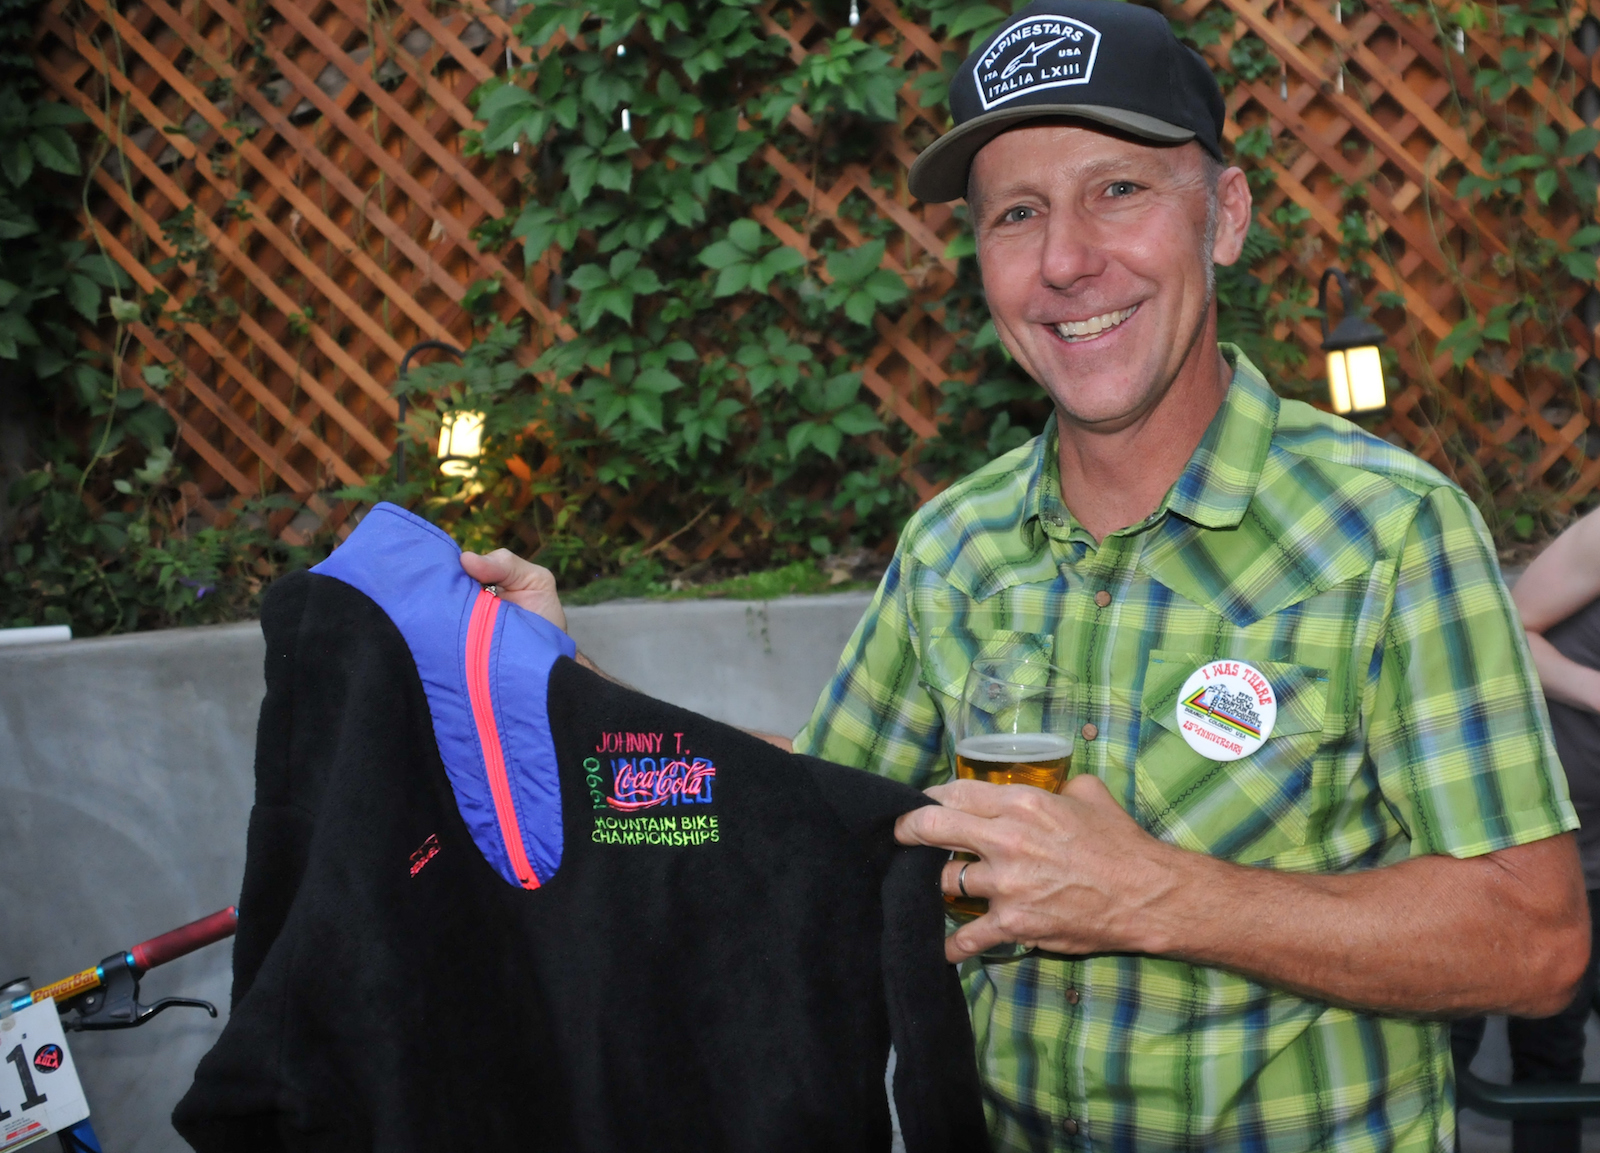 John Tomac, at a September 2015 dinner event celebrating the 25th anniversary of the 1990 world mountain-bike championships in Durango, Colorado. Photo by Tom Moran.